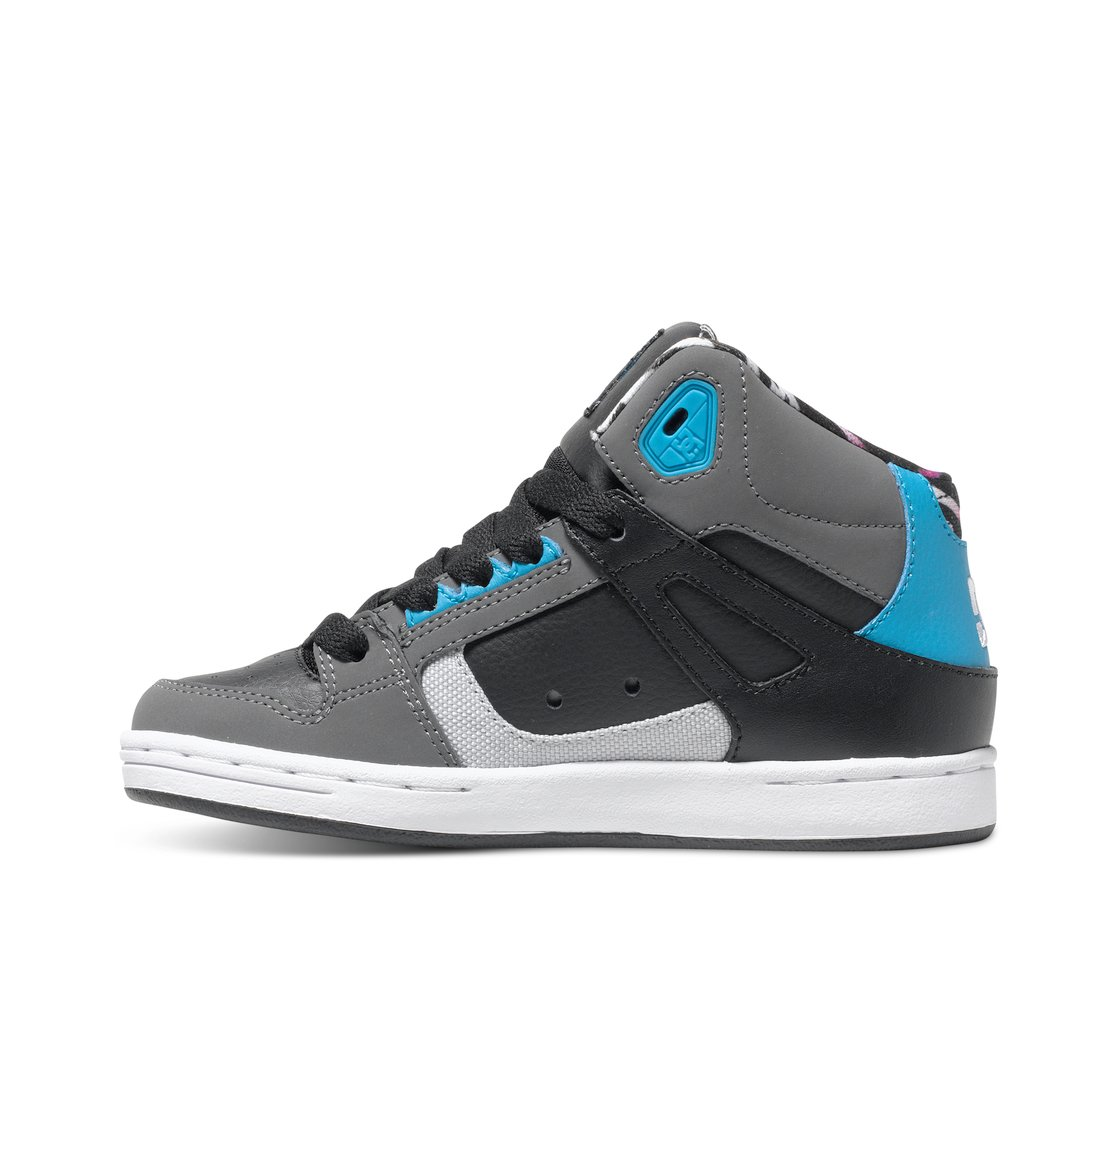 boy 39 s 8 16 rebound ken block high top shoes adbs100149 dc shoes. Black Bedroom Furniture Sets. Home Design Ideas